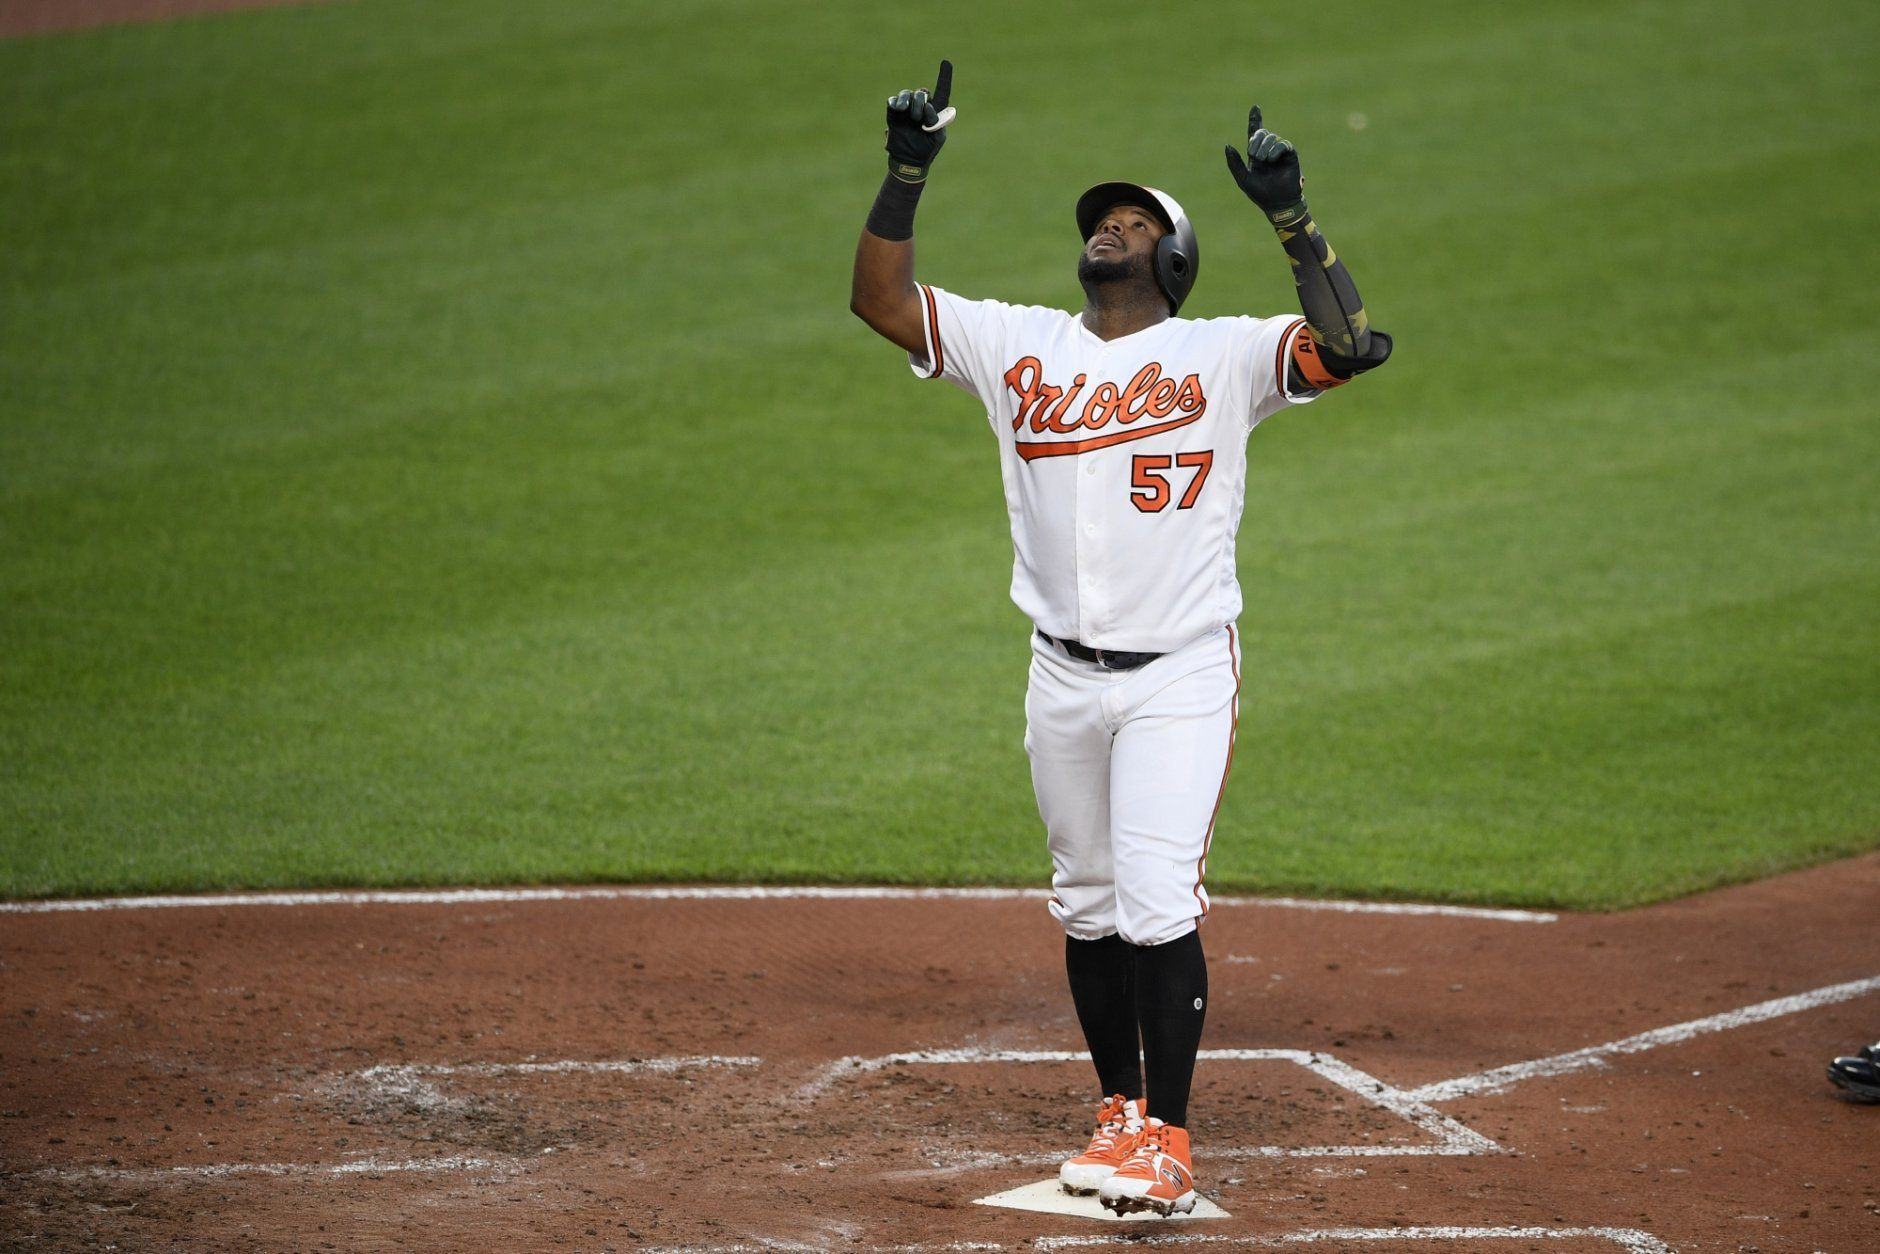 Baltimore Orioles' Hanser Alberto celebrates his home run during the third inning of a baseball game against the New York Yankees, Monday, May 20, 2019, in Baltimore. (AP Photo/Nick Wass)